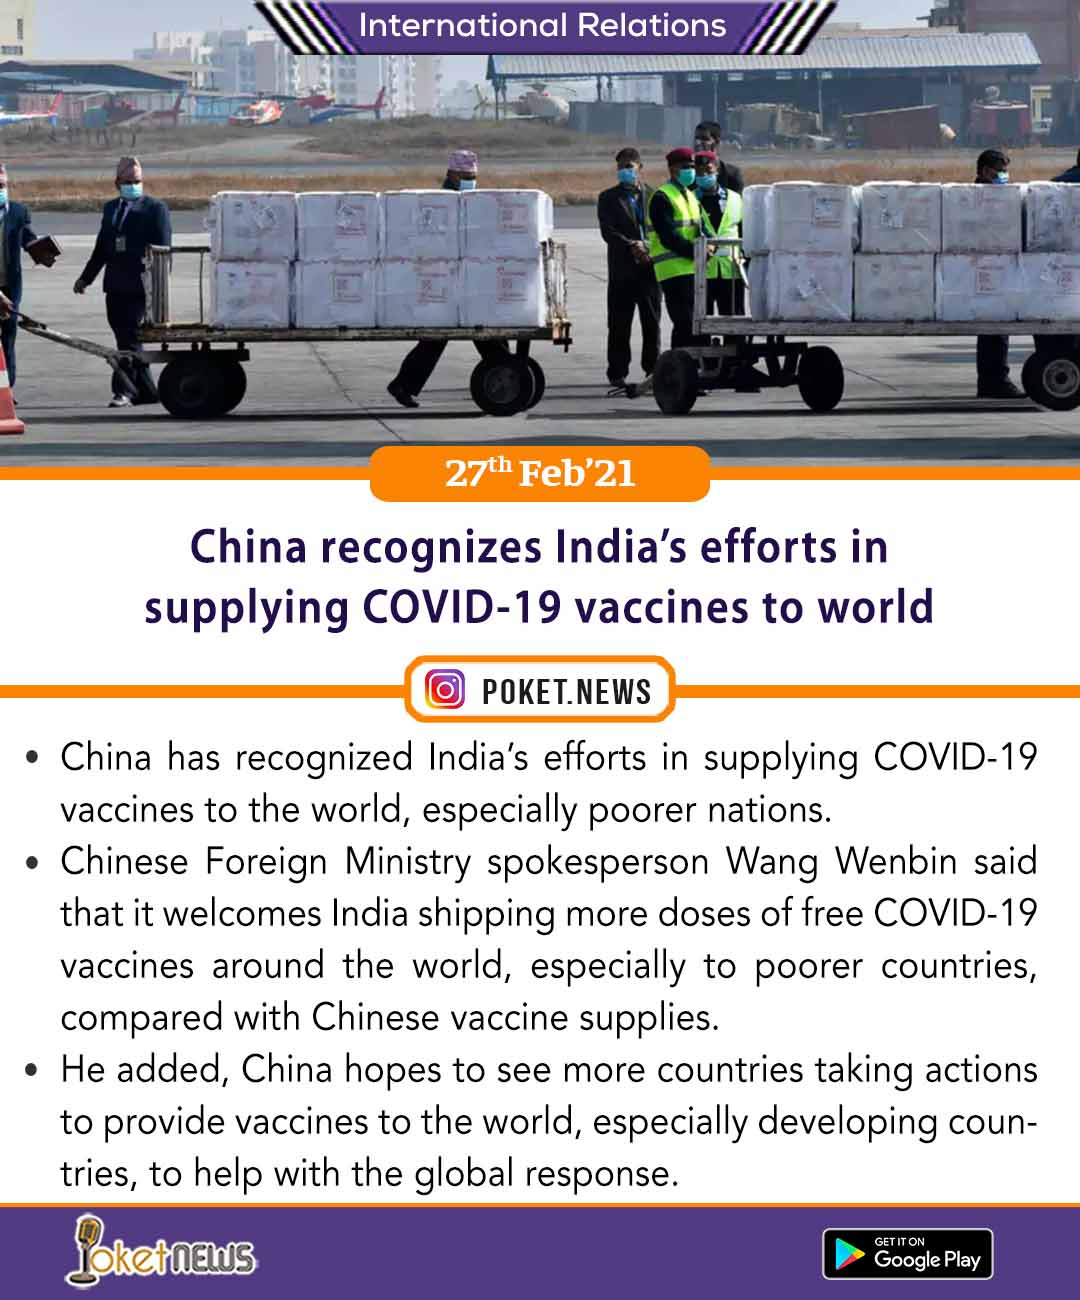 China recognizes India's efforts in supplying COVID-19 vaccines to world